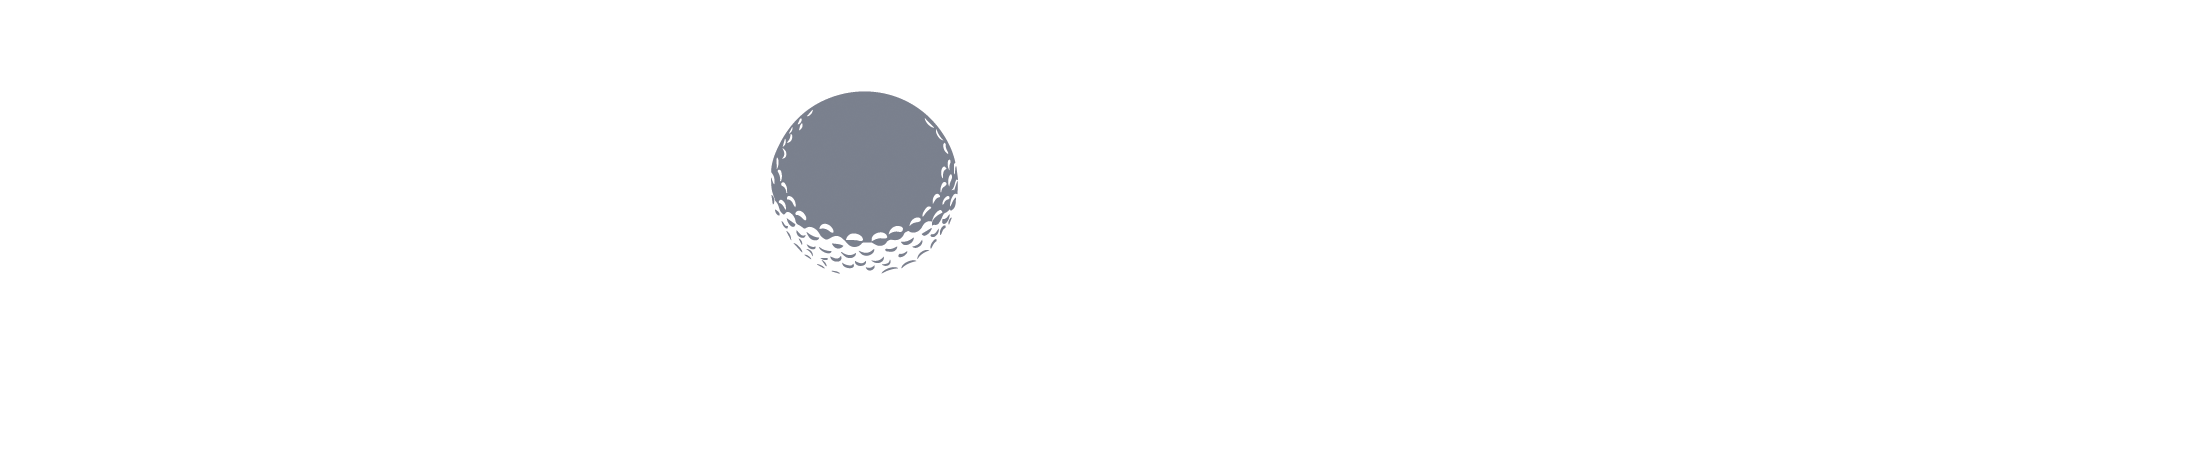 Kard & Brown Scottish Golf Packages & Tours – Booking a Golfing Break in Scotland